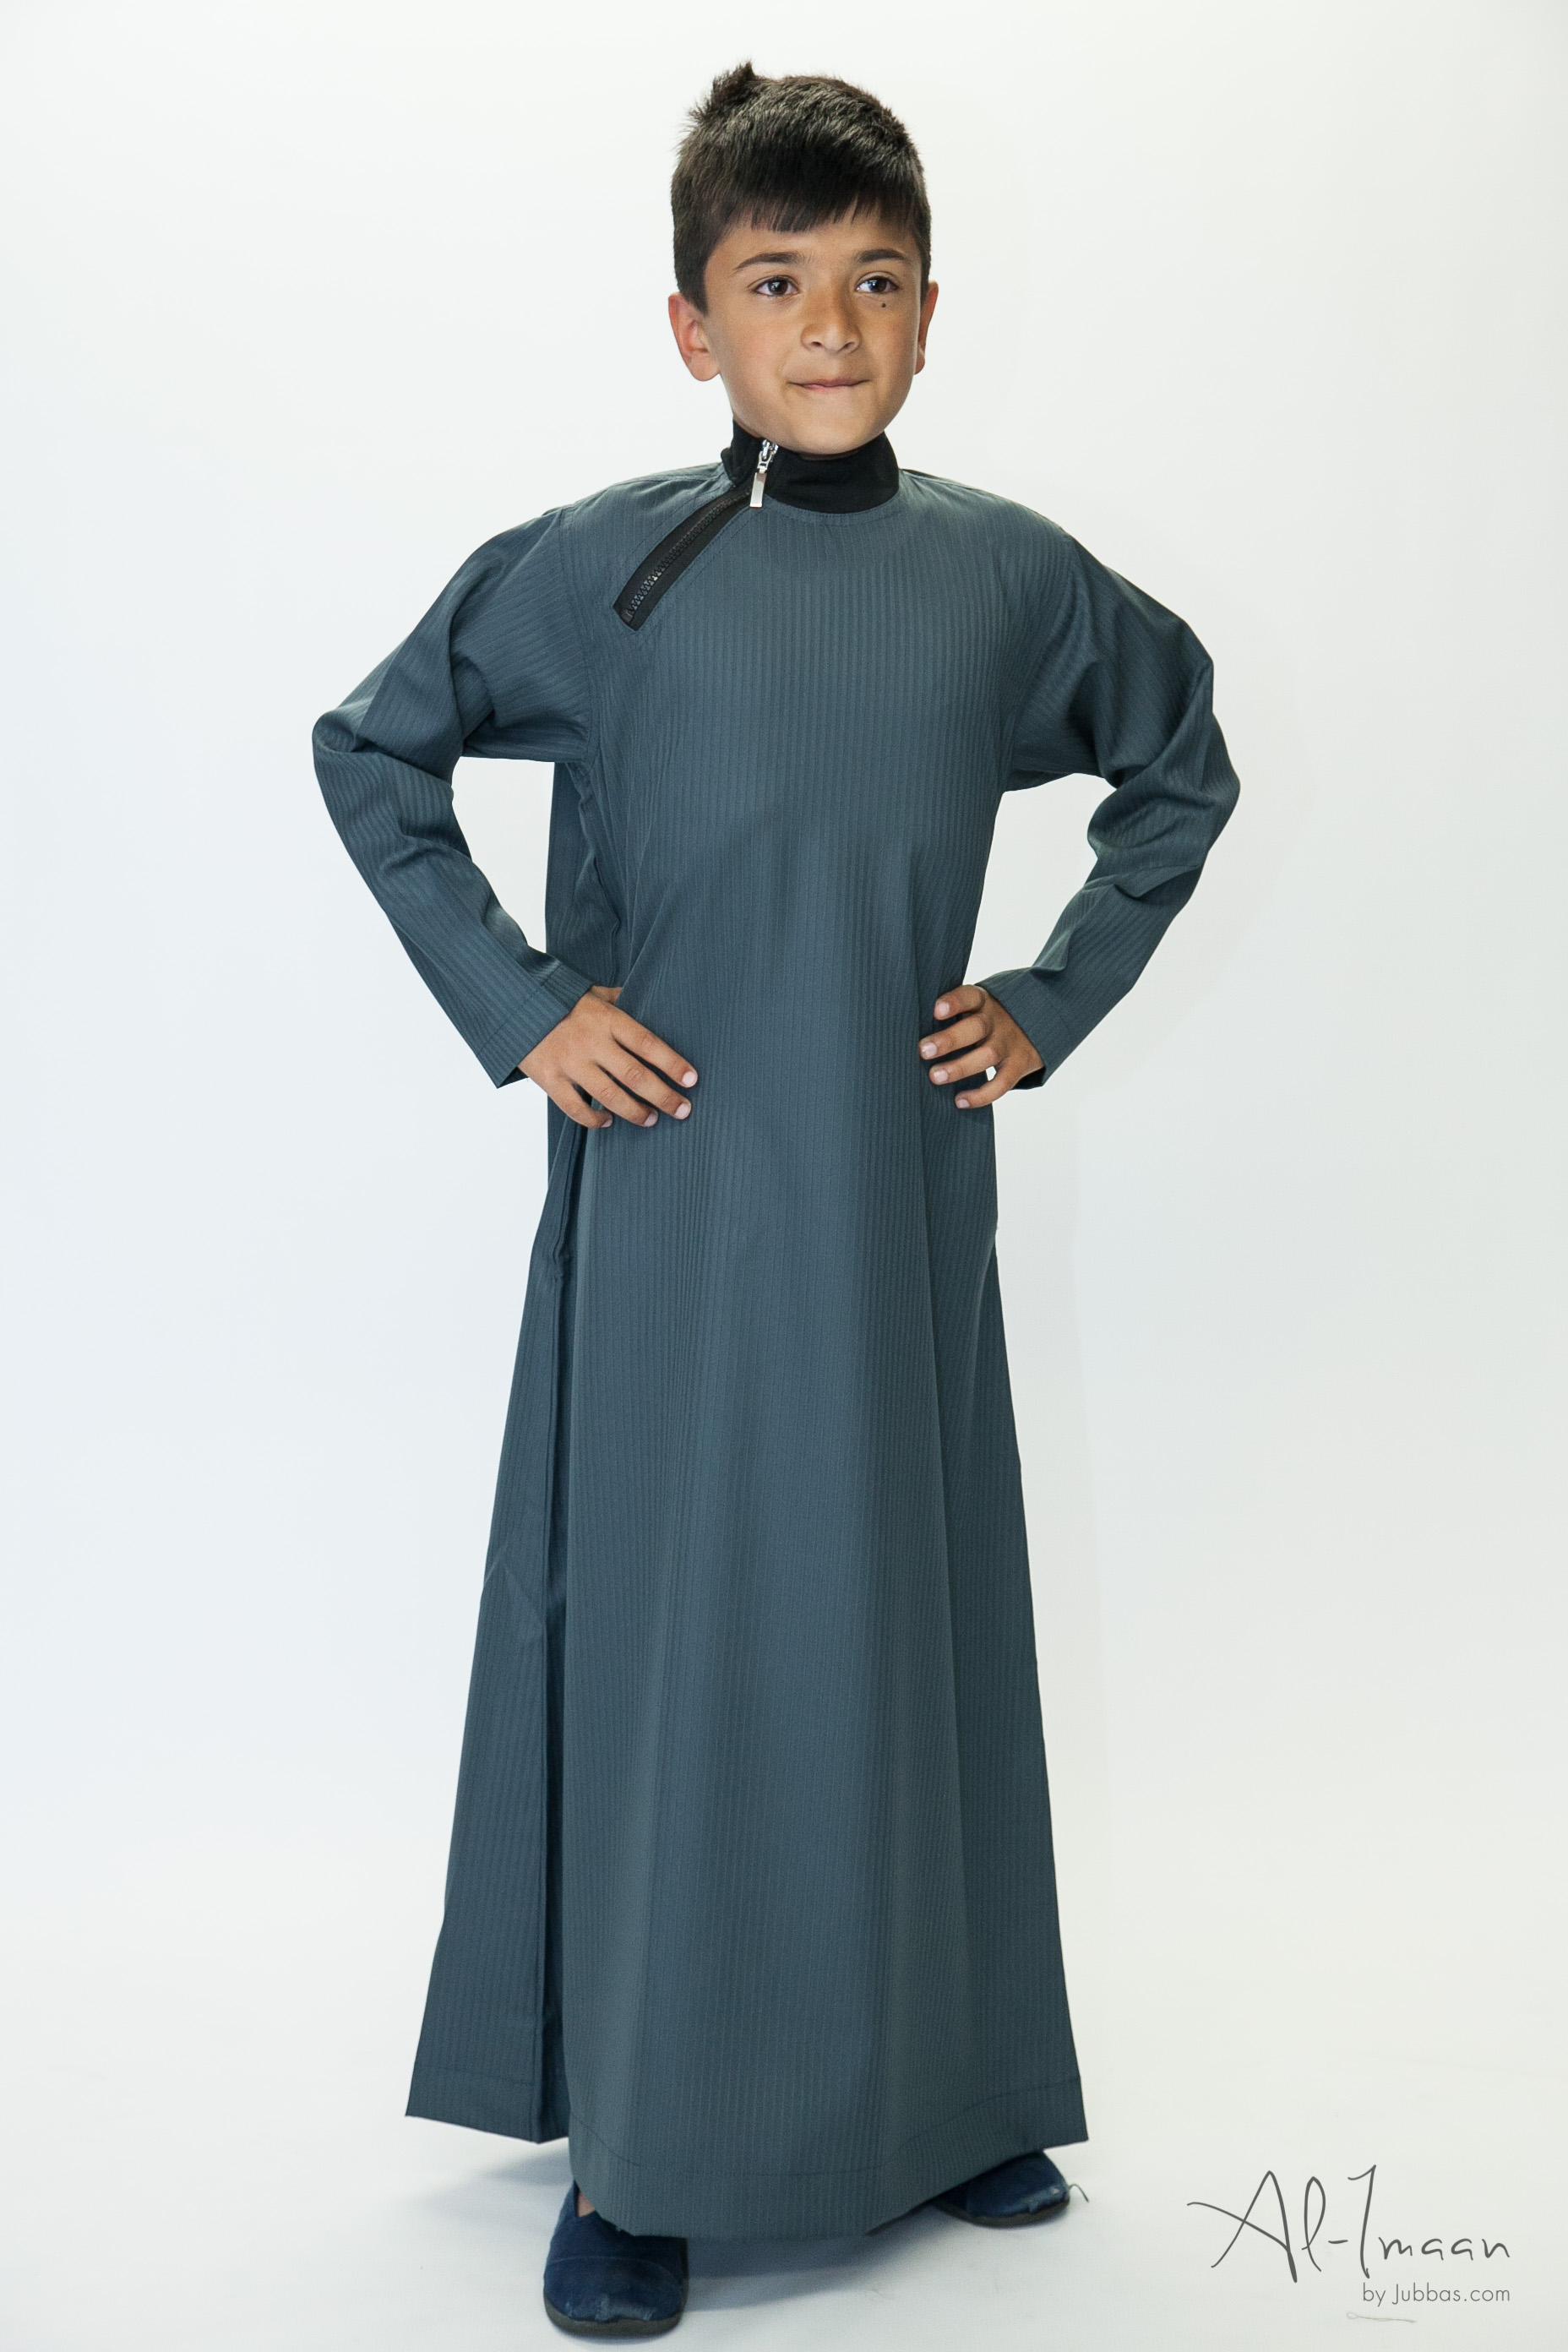 Boys Side Zip Nevy Blue Jubba